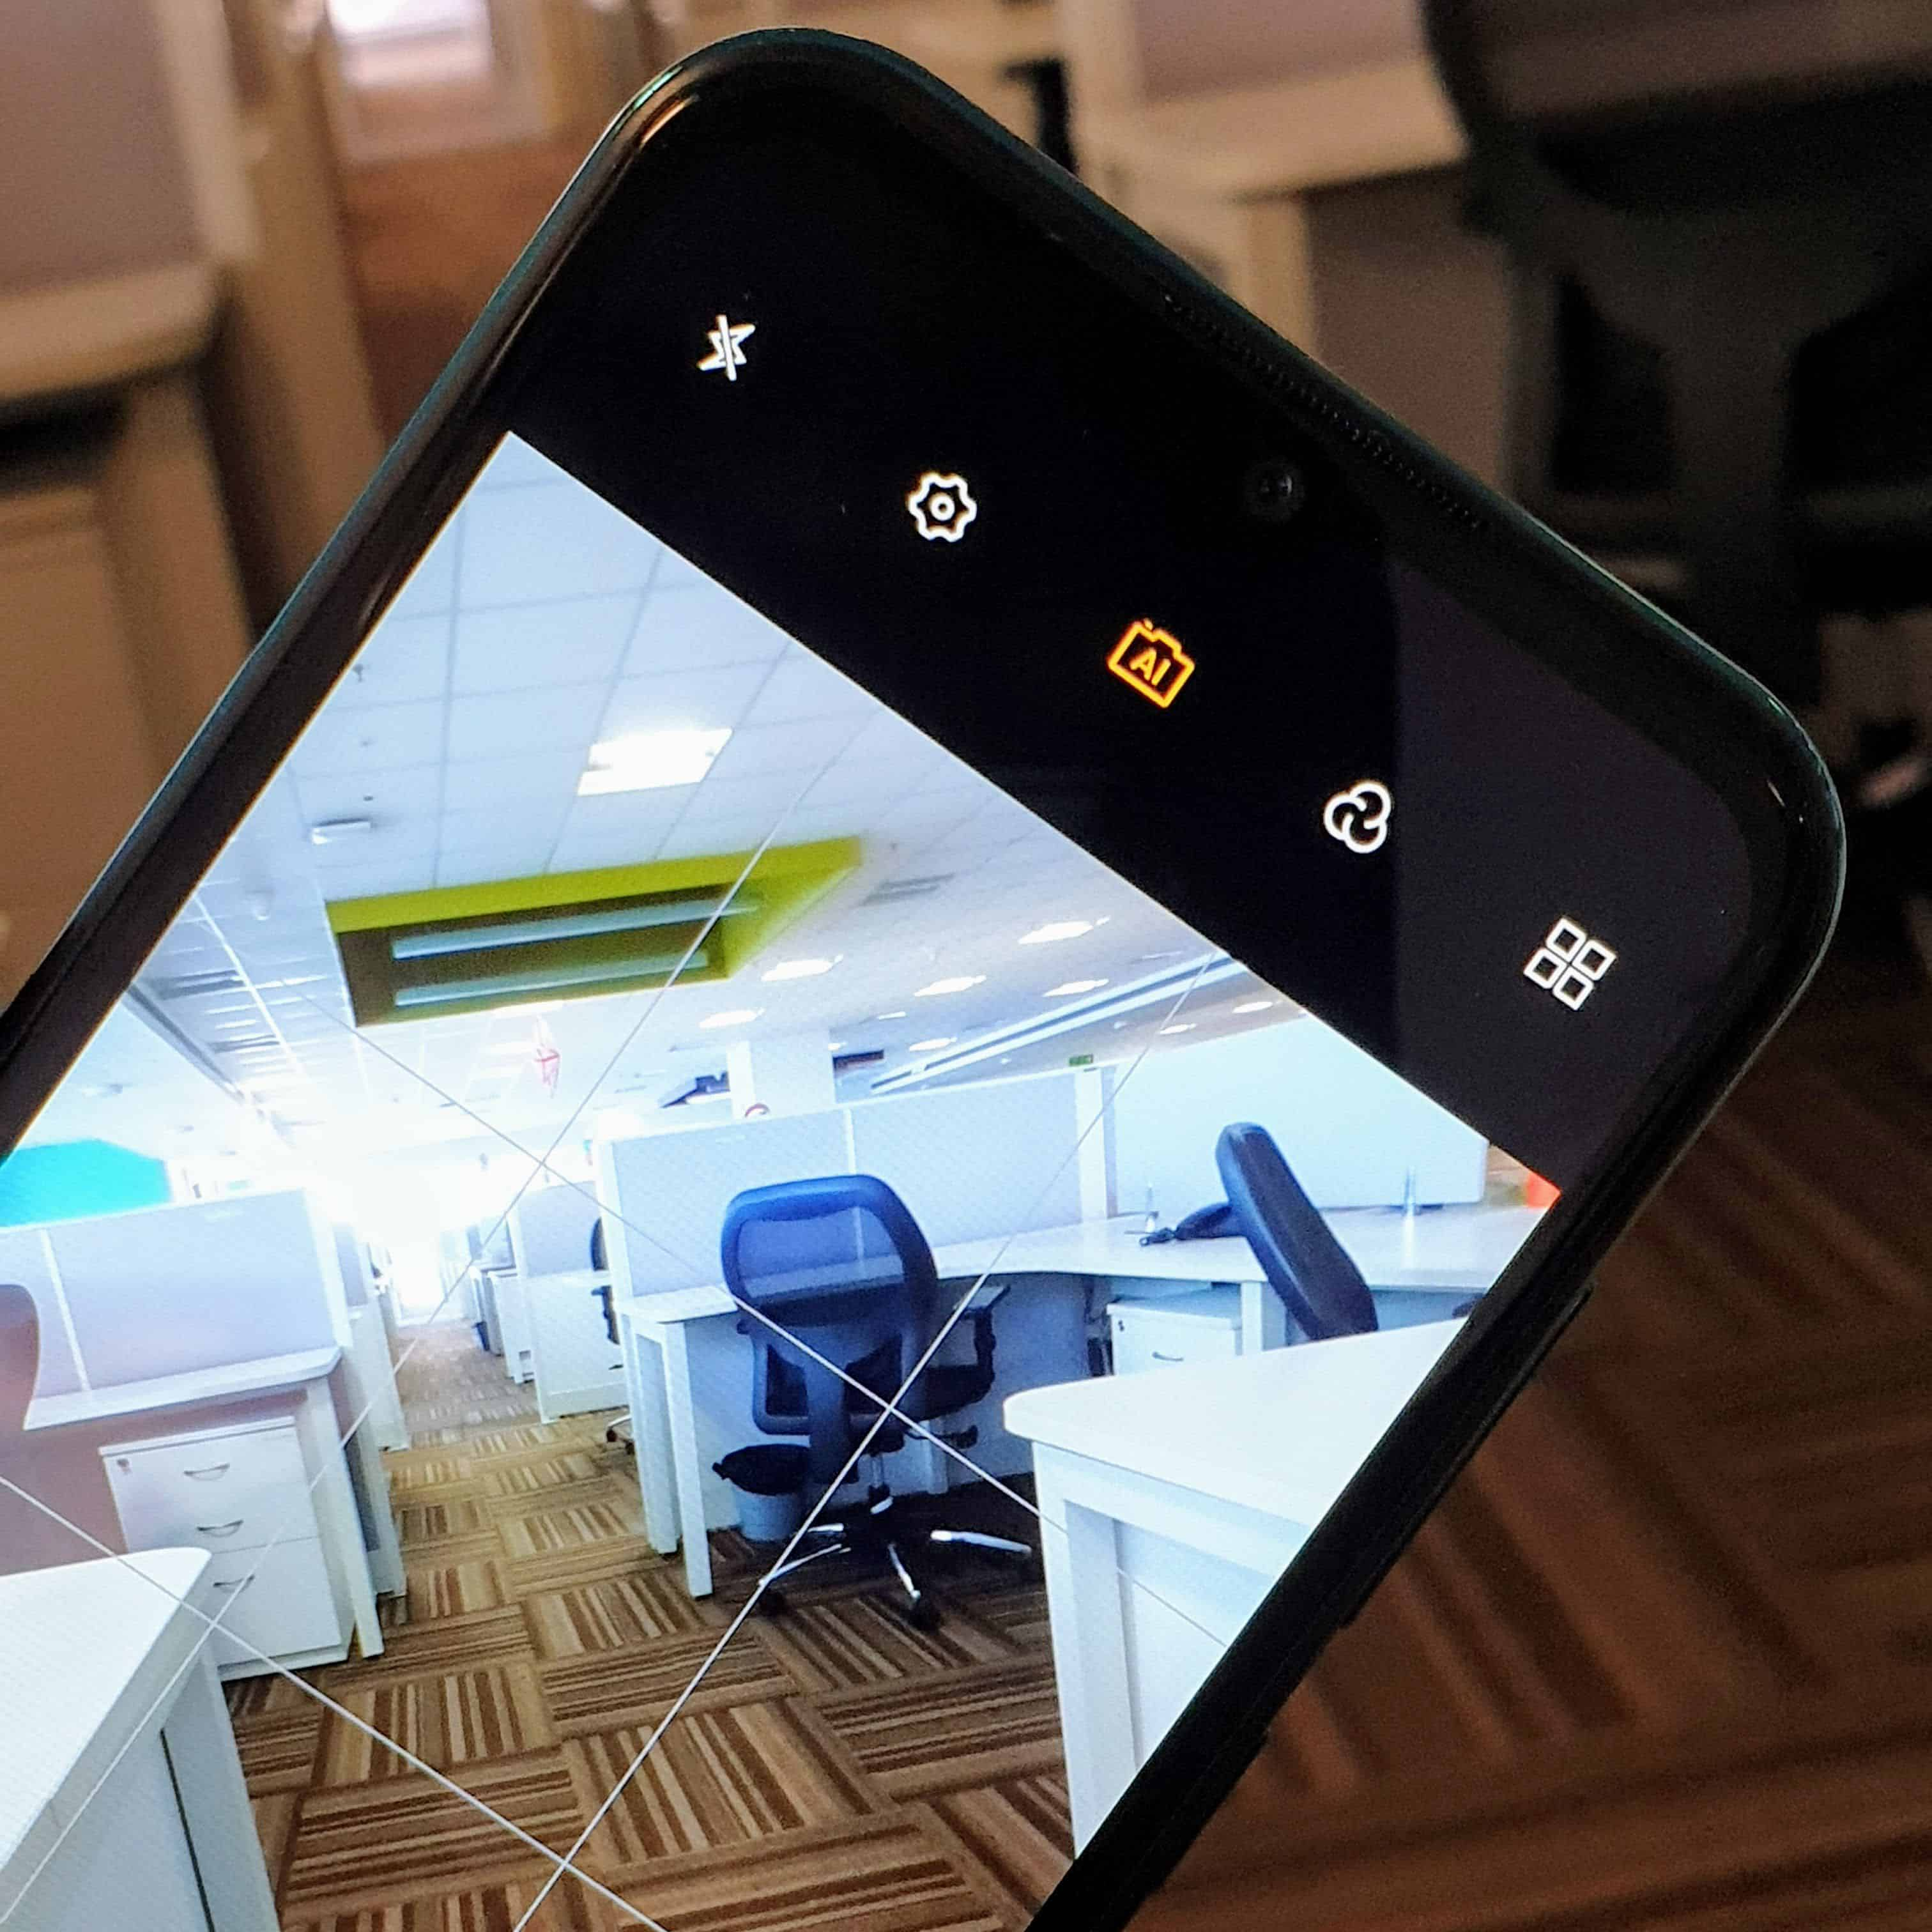 Coolpad Cool 3 Plus Review - Should You Buy this Entry-level Phone? - 4